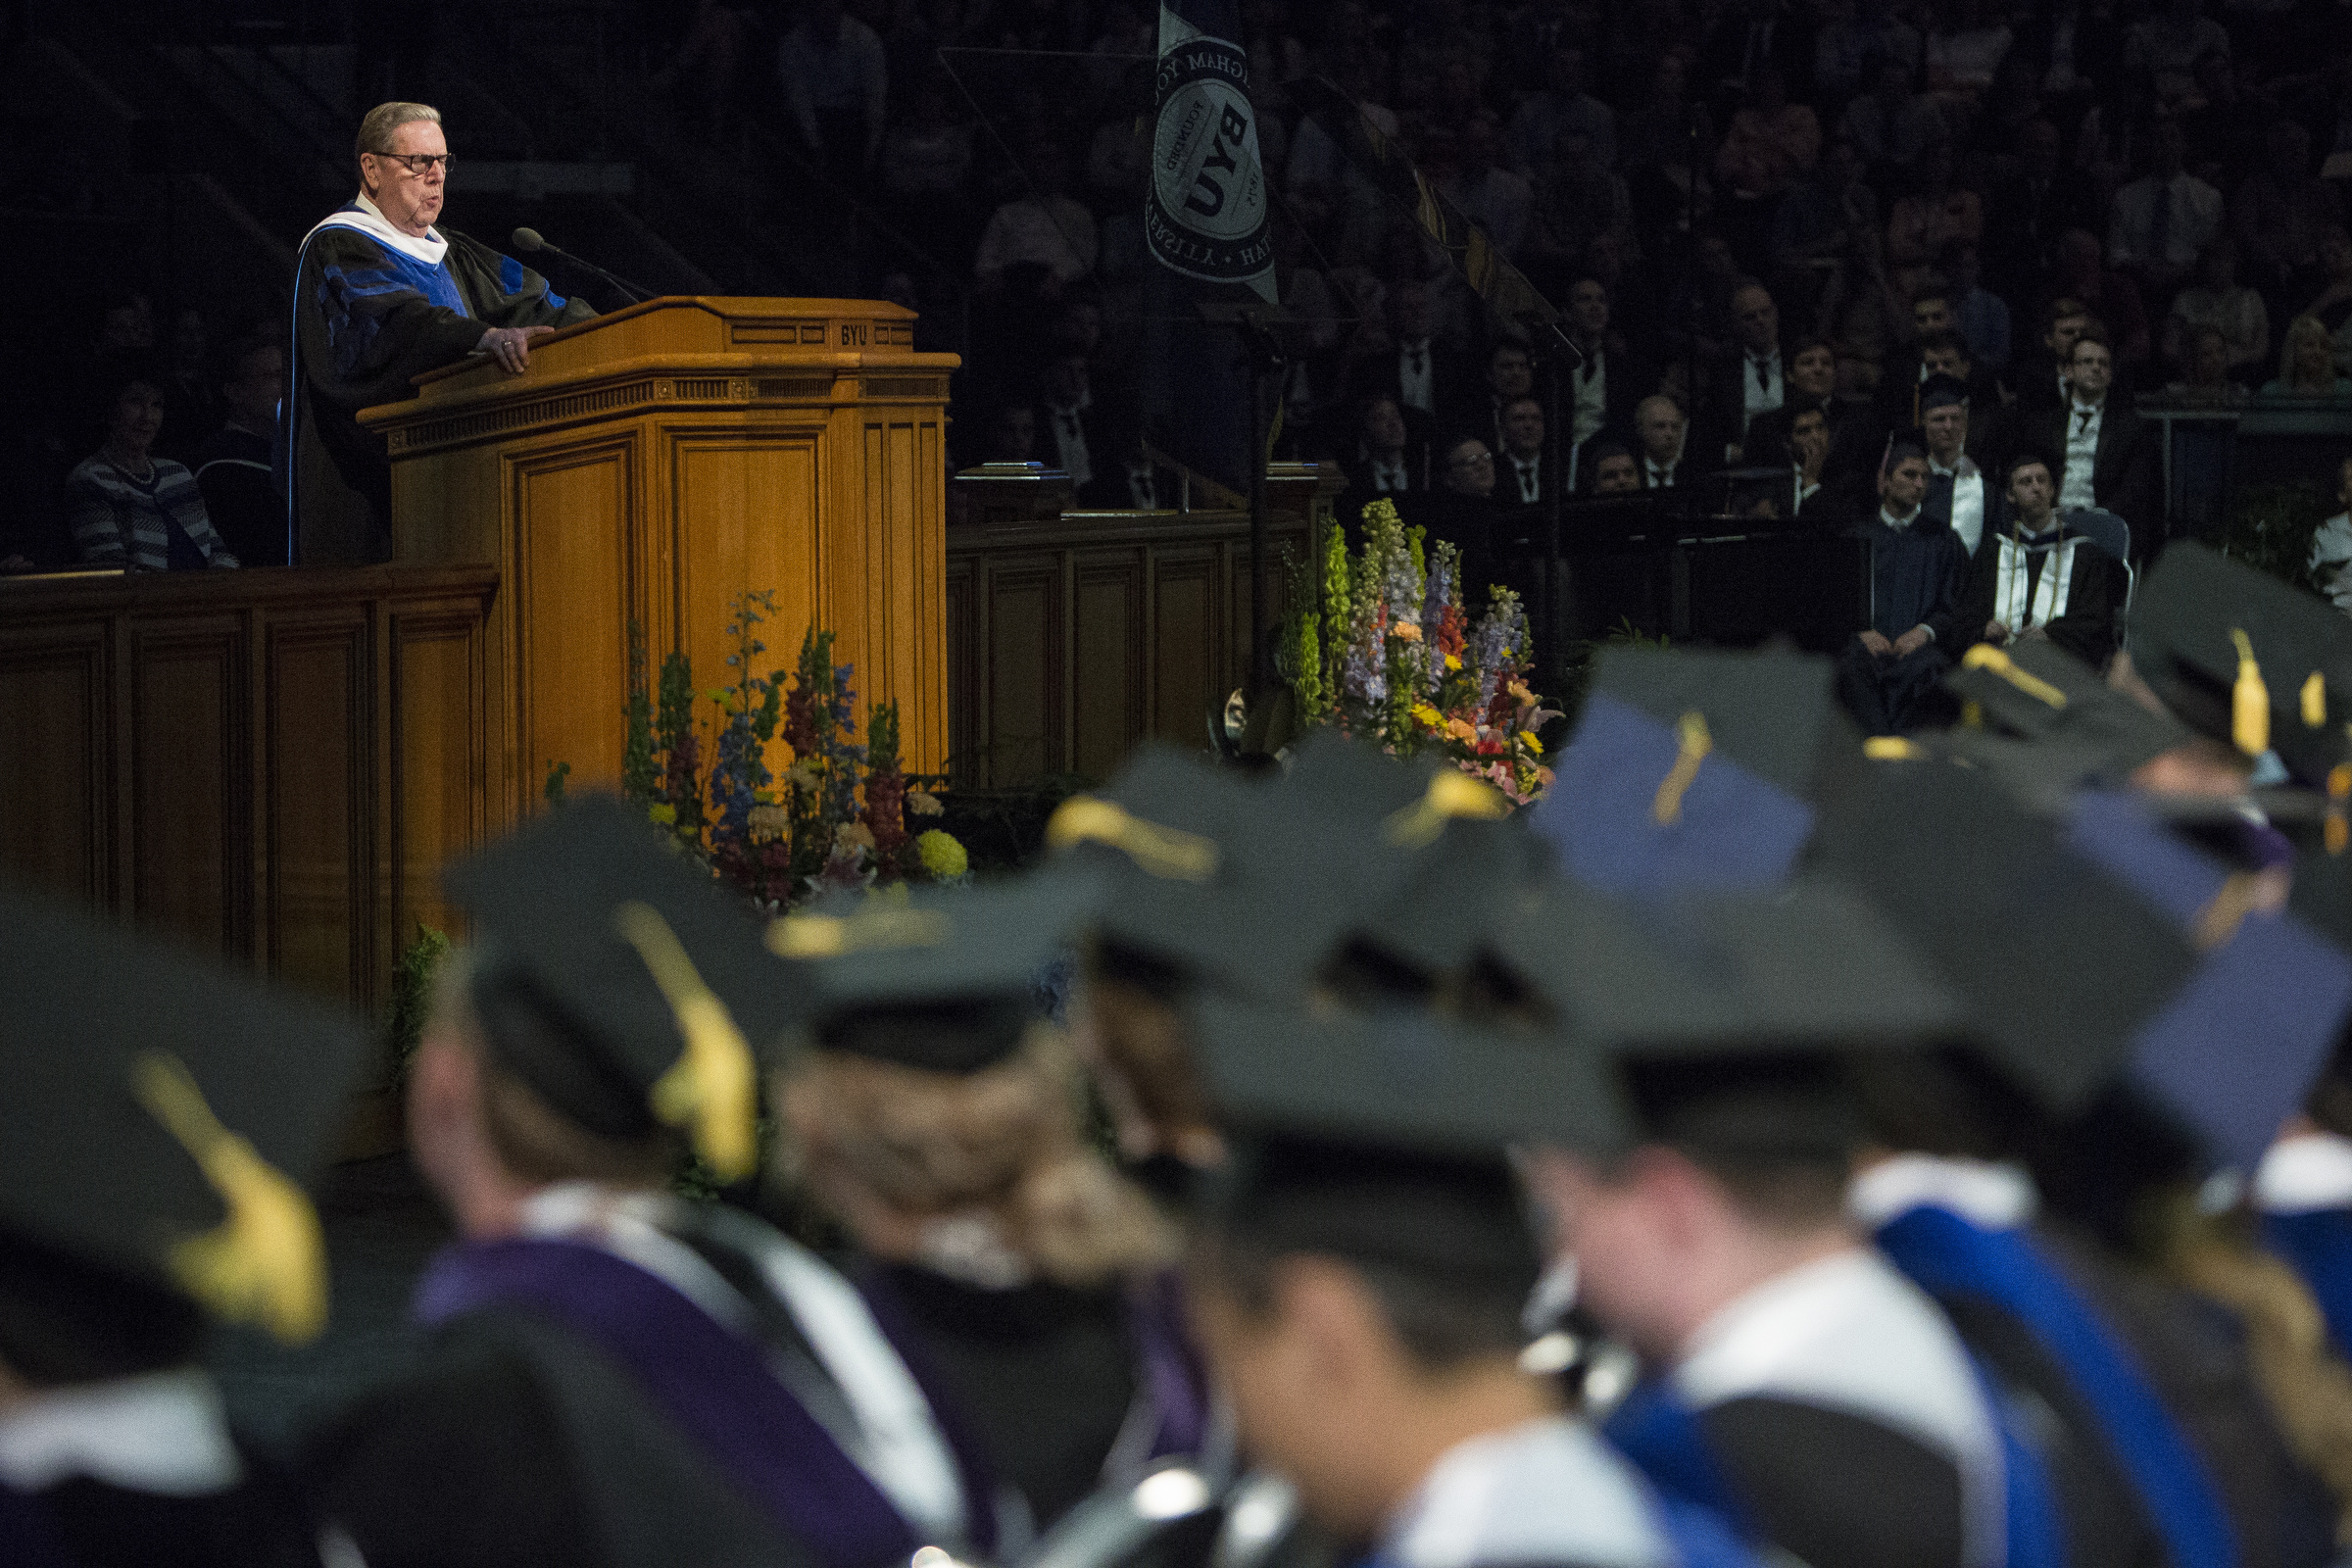 Elder Jeffrey R. Holland of the Quorum of the Twelve Apostles delivers the commencement address during Brigham Young University's commencement ceremony in the Marriott Center on Thursday, April 26, 2018, in Provo. BYU is awarding nearly 6,300 degrees to graduates this week.